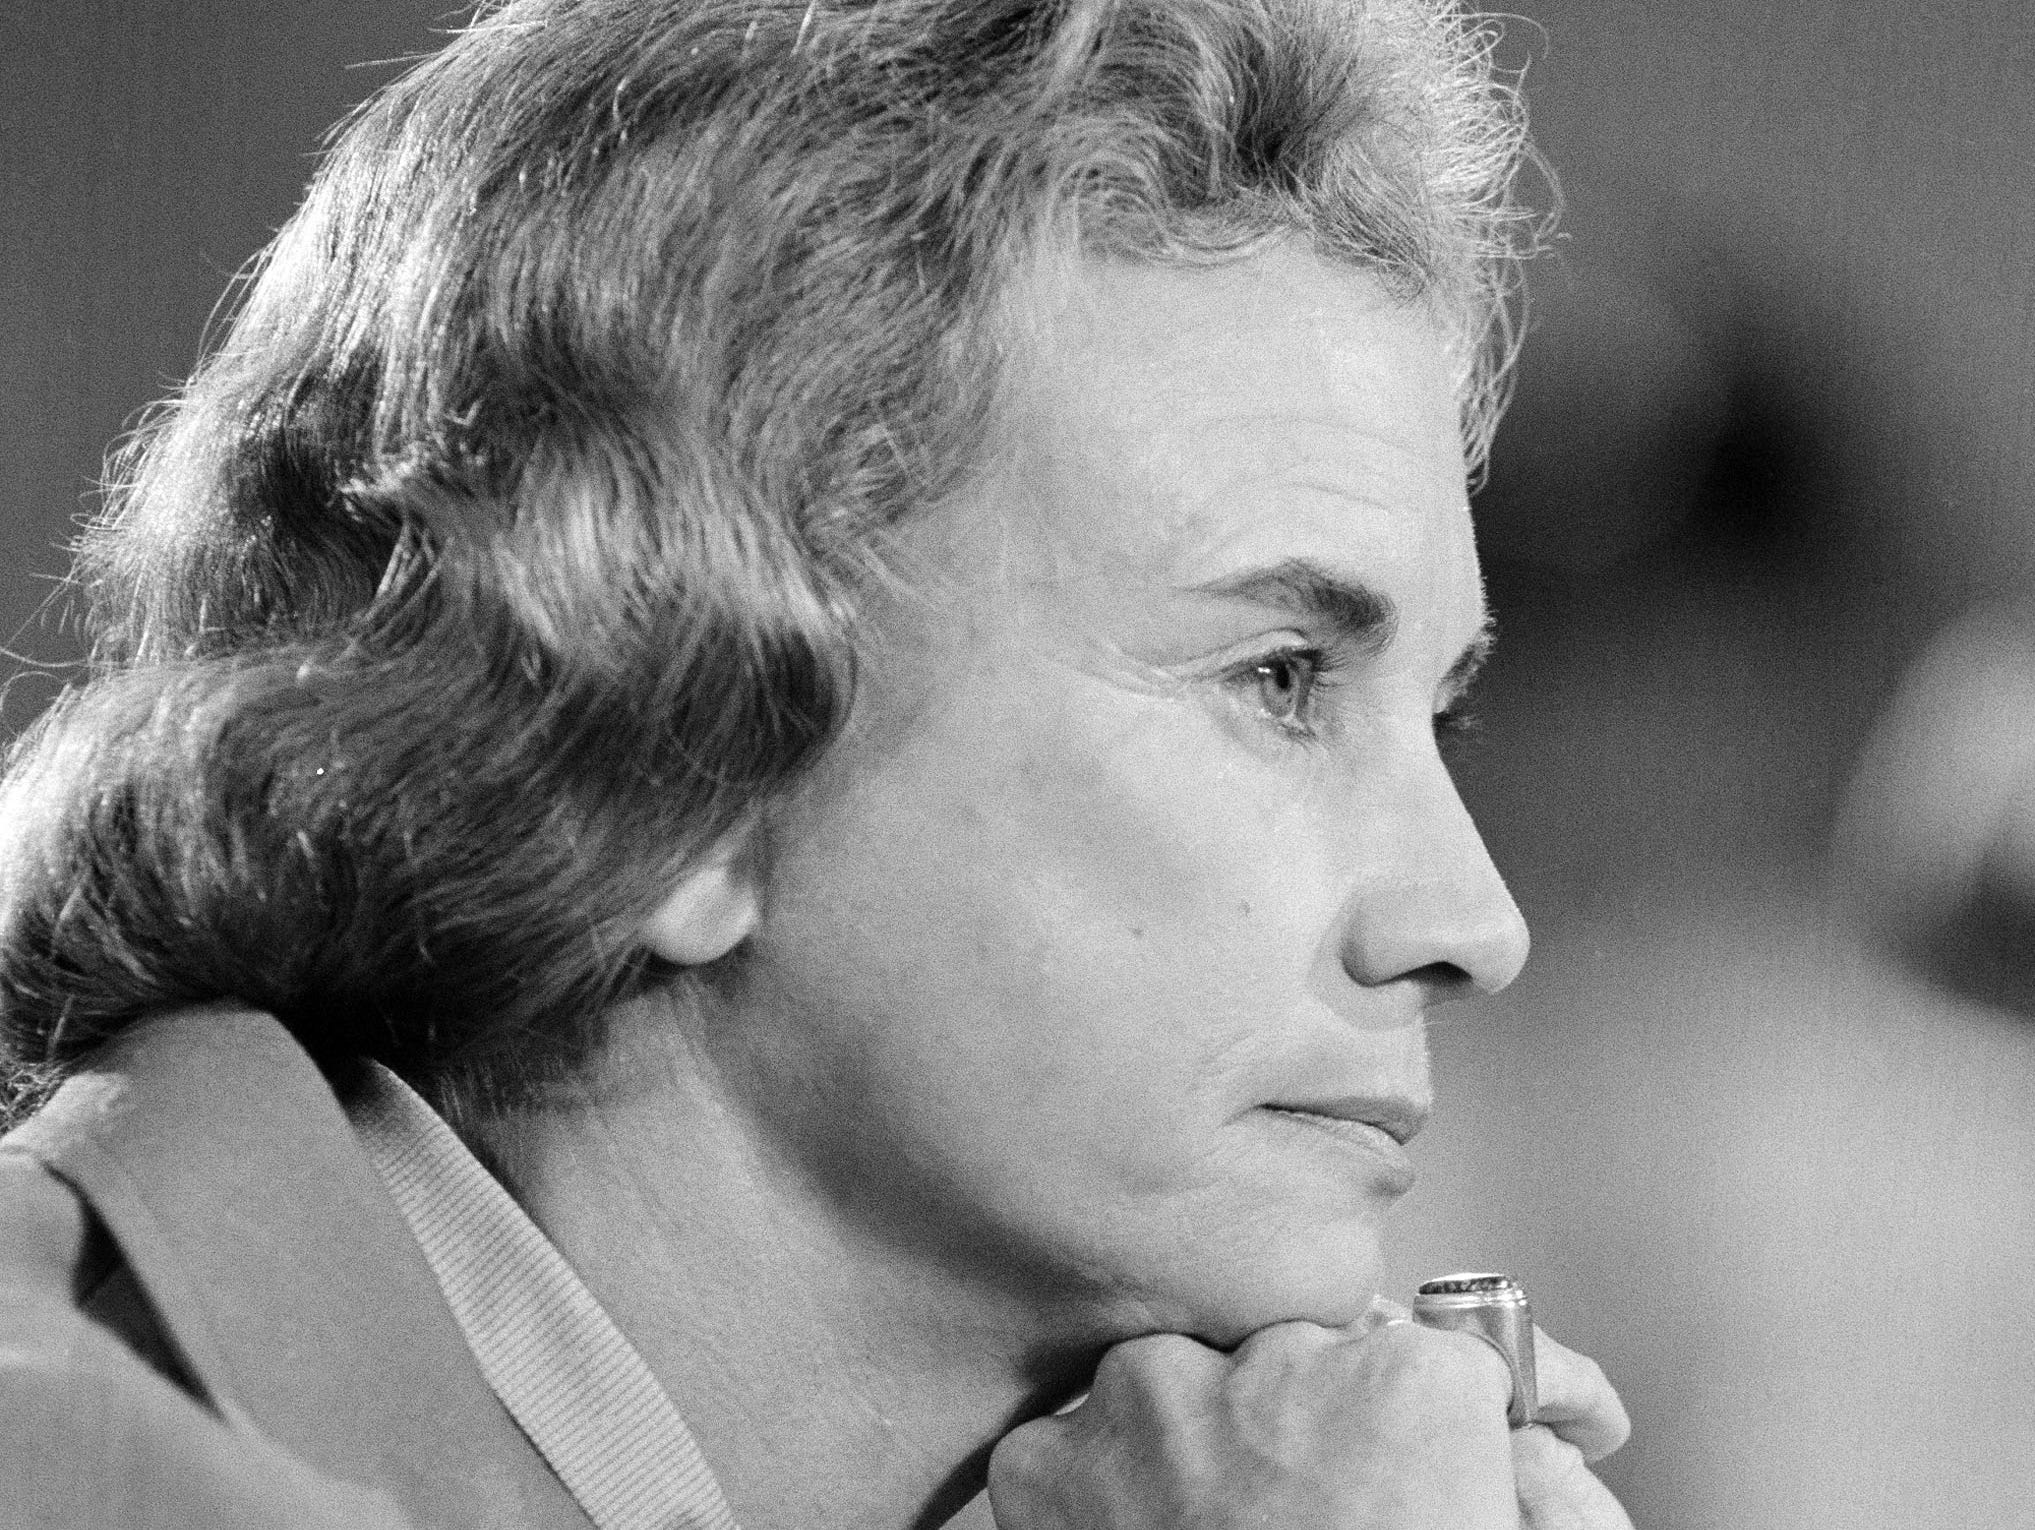 Supreme Court nominee Sandra Day O'Connor looks pensive while appearing before the Senate Judiciary Committee, Sept. 9, 1981, during her confirmation hearings.